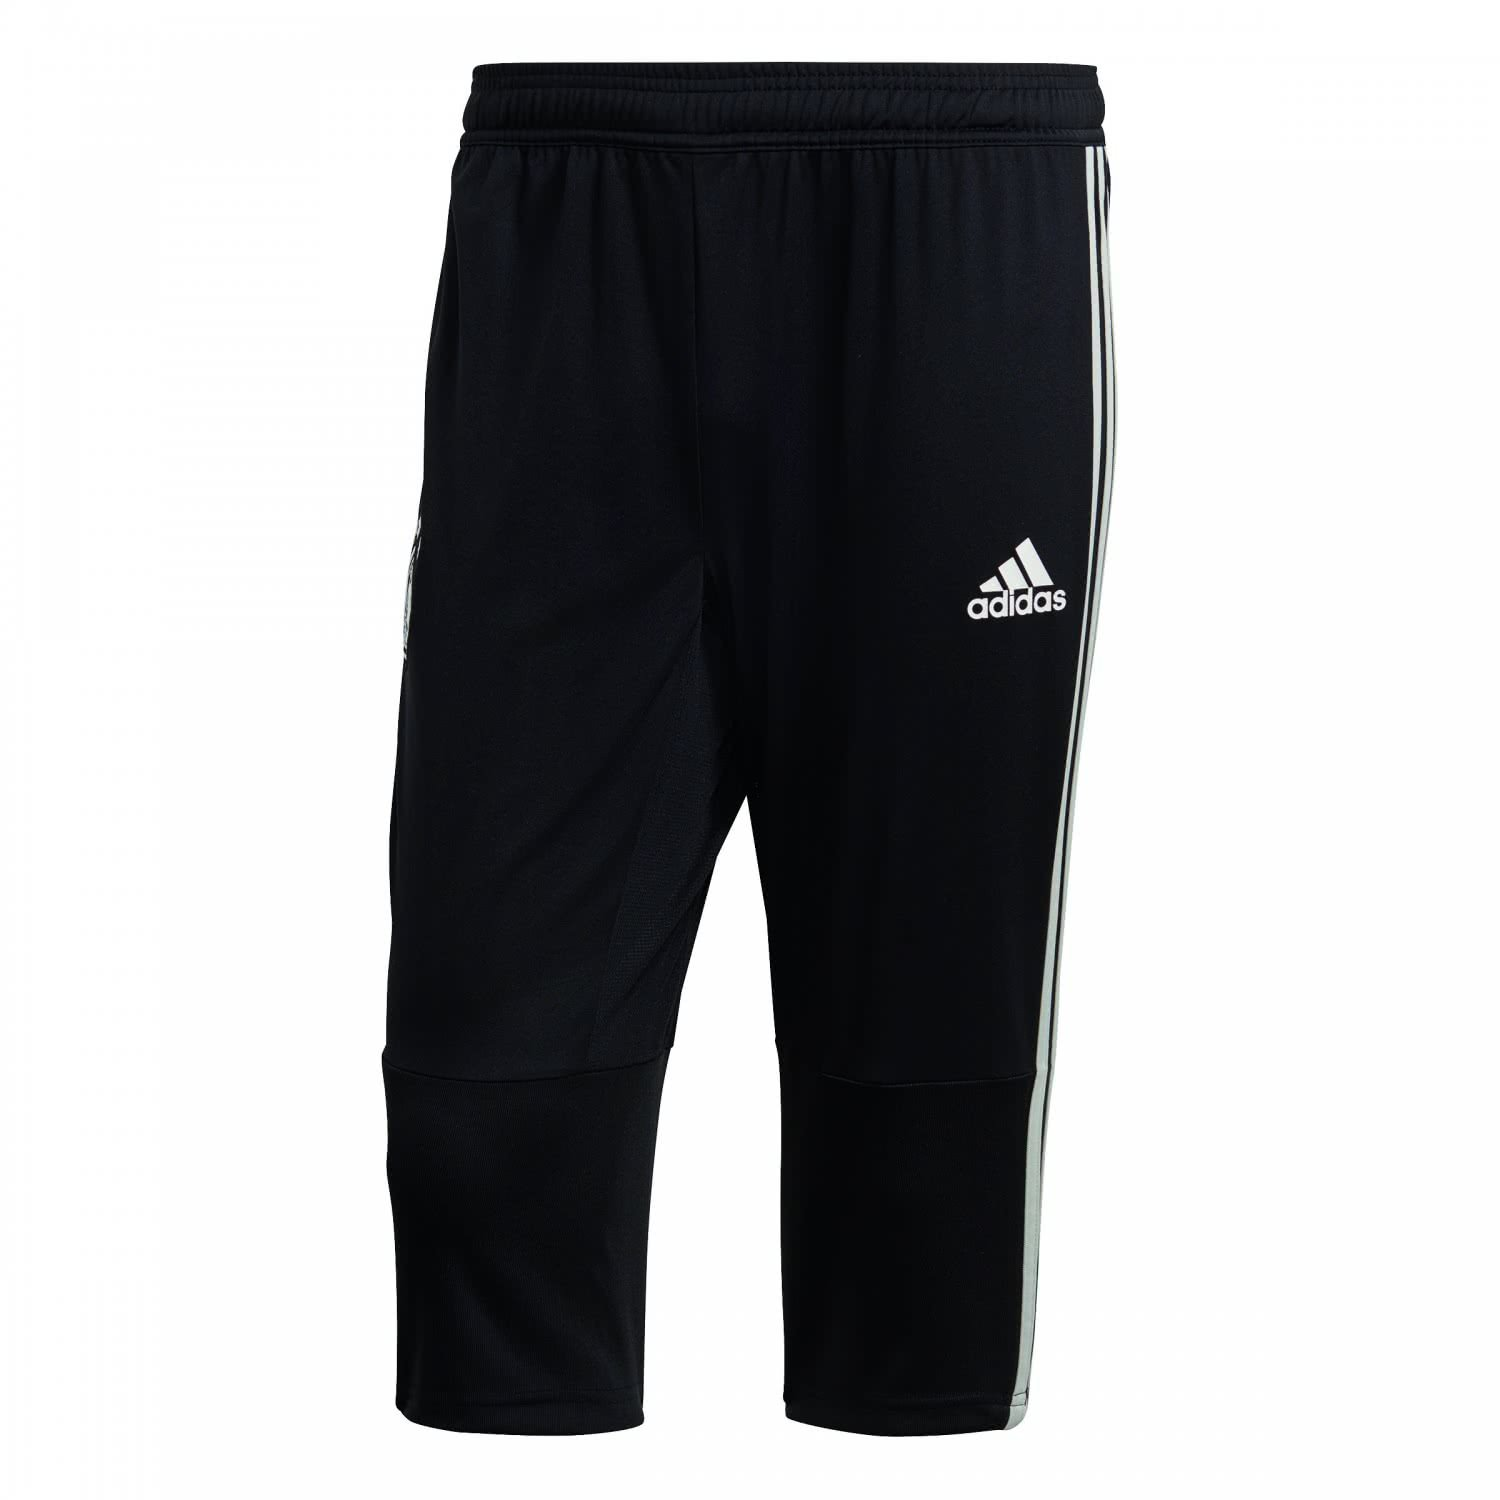 2018-2019 Germany Adidas 3/4 Length Training Pants (Black) B0778XHC3JBlack XS 30\